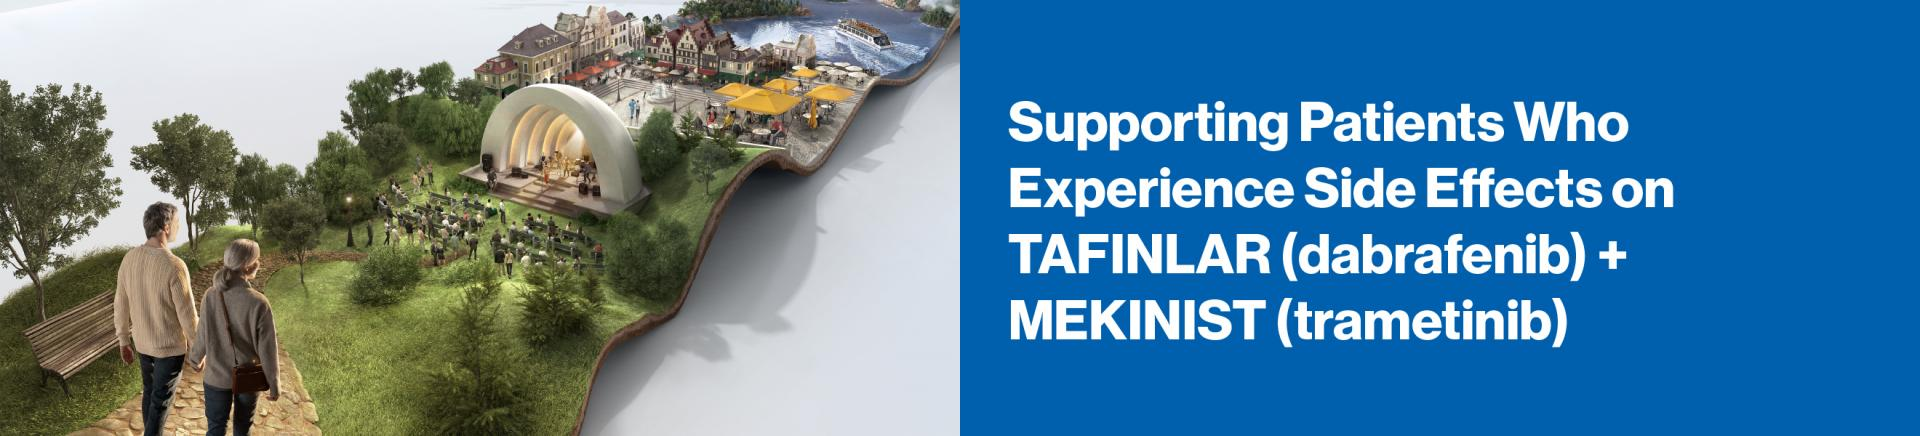 Supporting Patients Who Experience Side Effects on TAFINLAR (dabrafenib) + MEKINIST (trametinib)